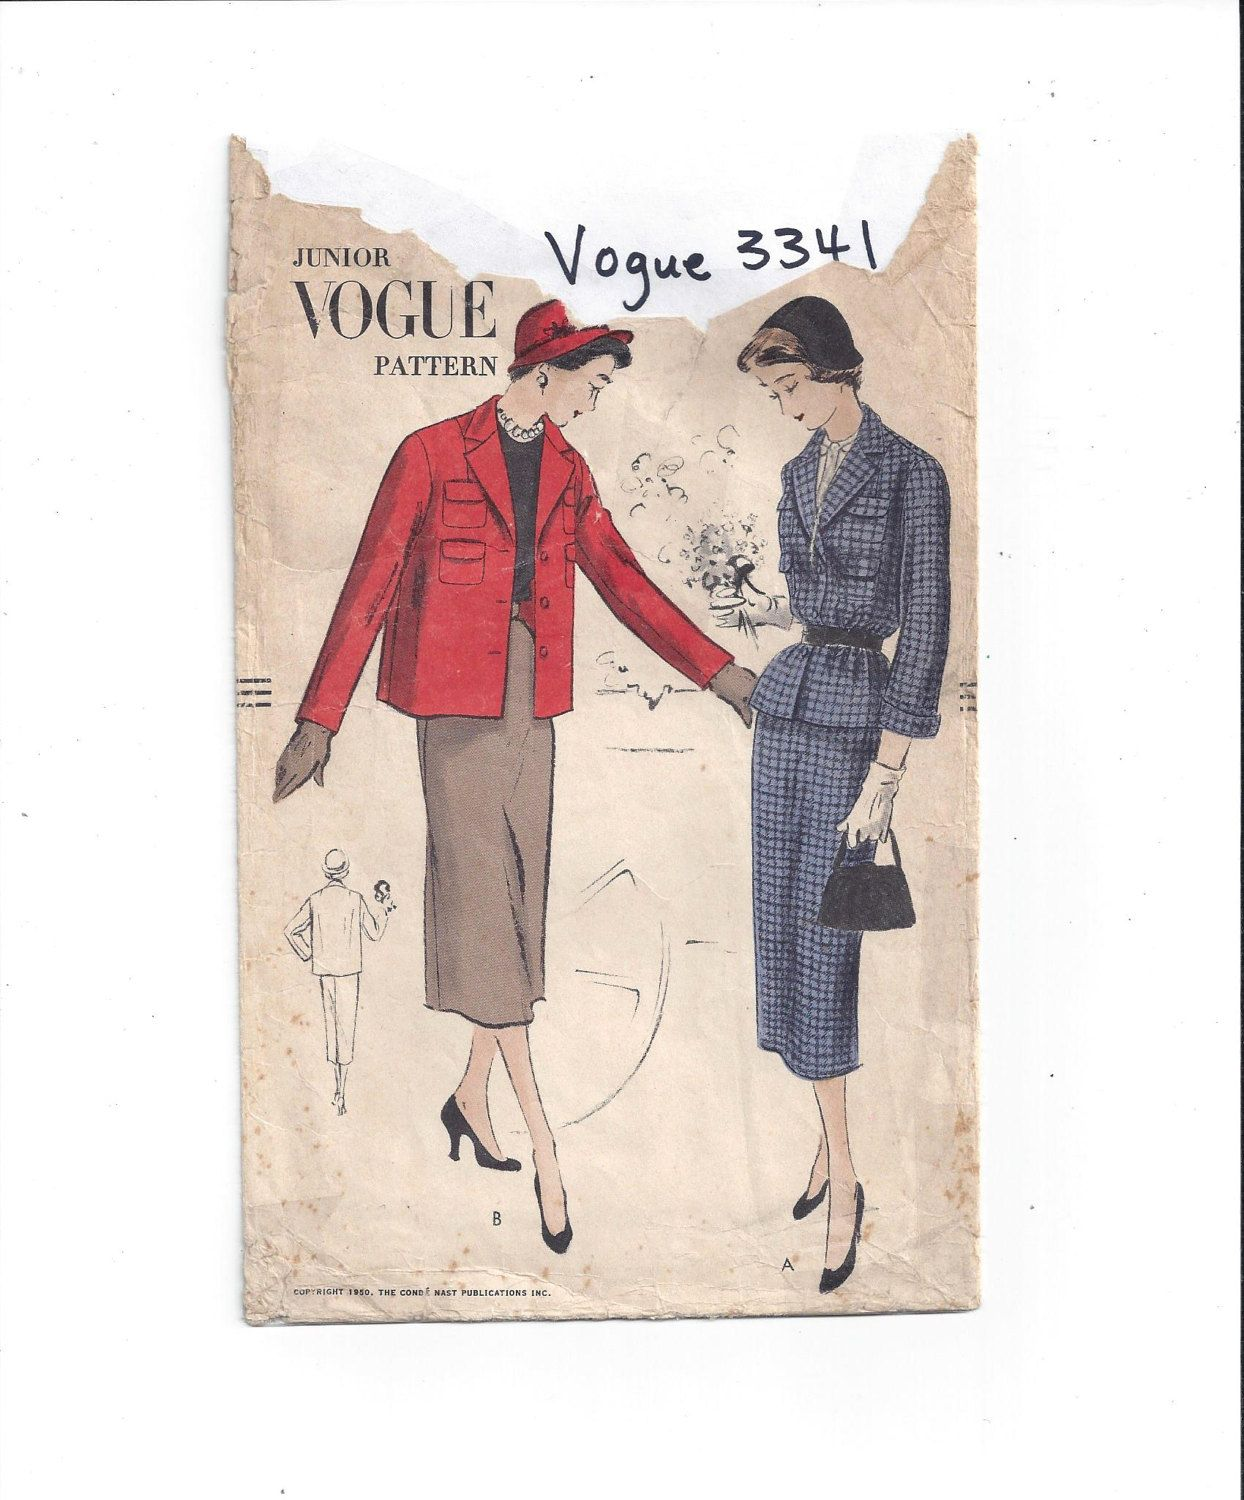 Vogue 3341 Pattern for Juniors' Suit, From 1950, Size Small, NON-Printed Pattern, Vintage Pattern, Home Sewing Pattern, 1950s Fashion Sewing by VictorianWardrobe on Etsy